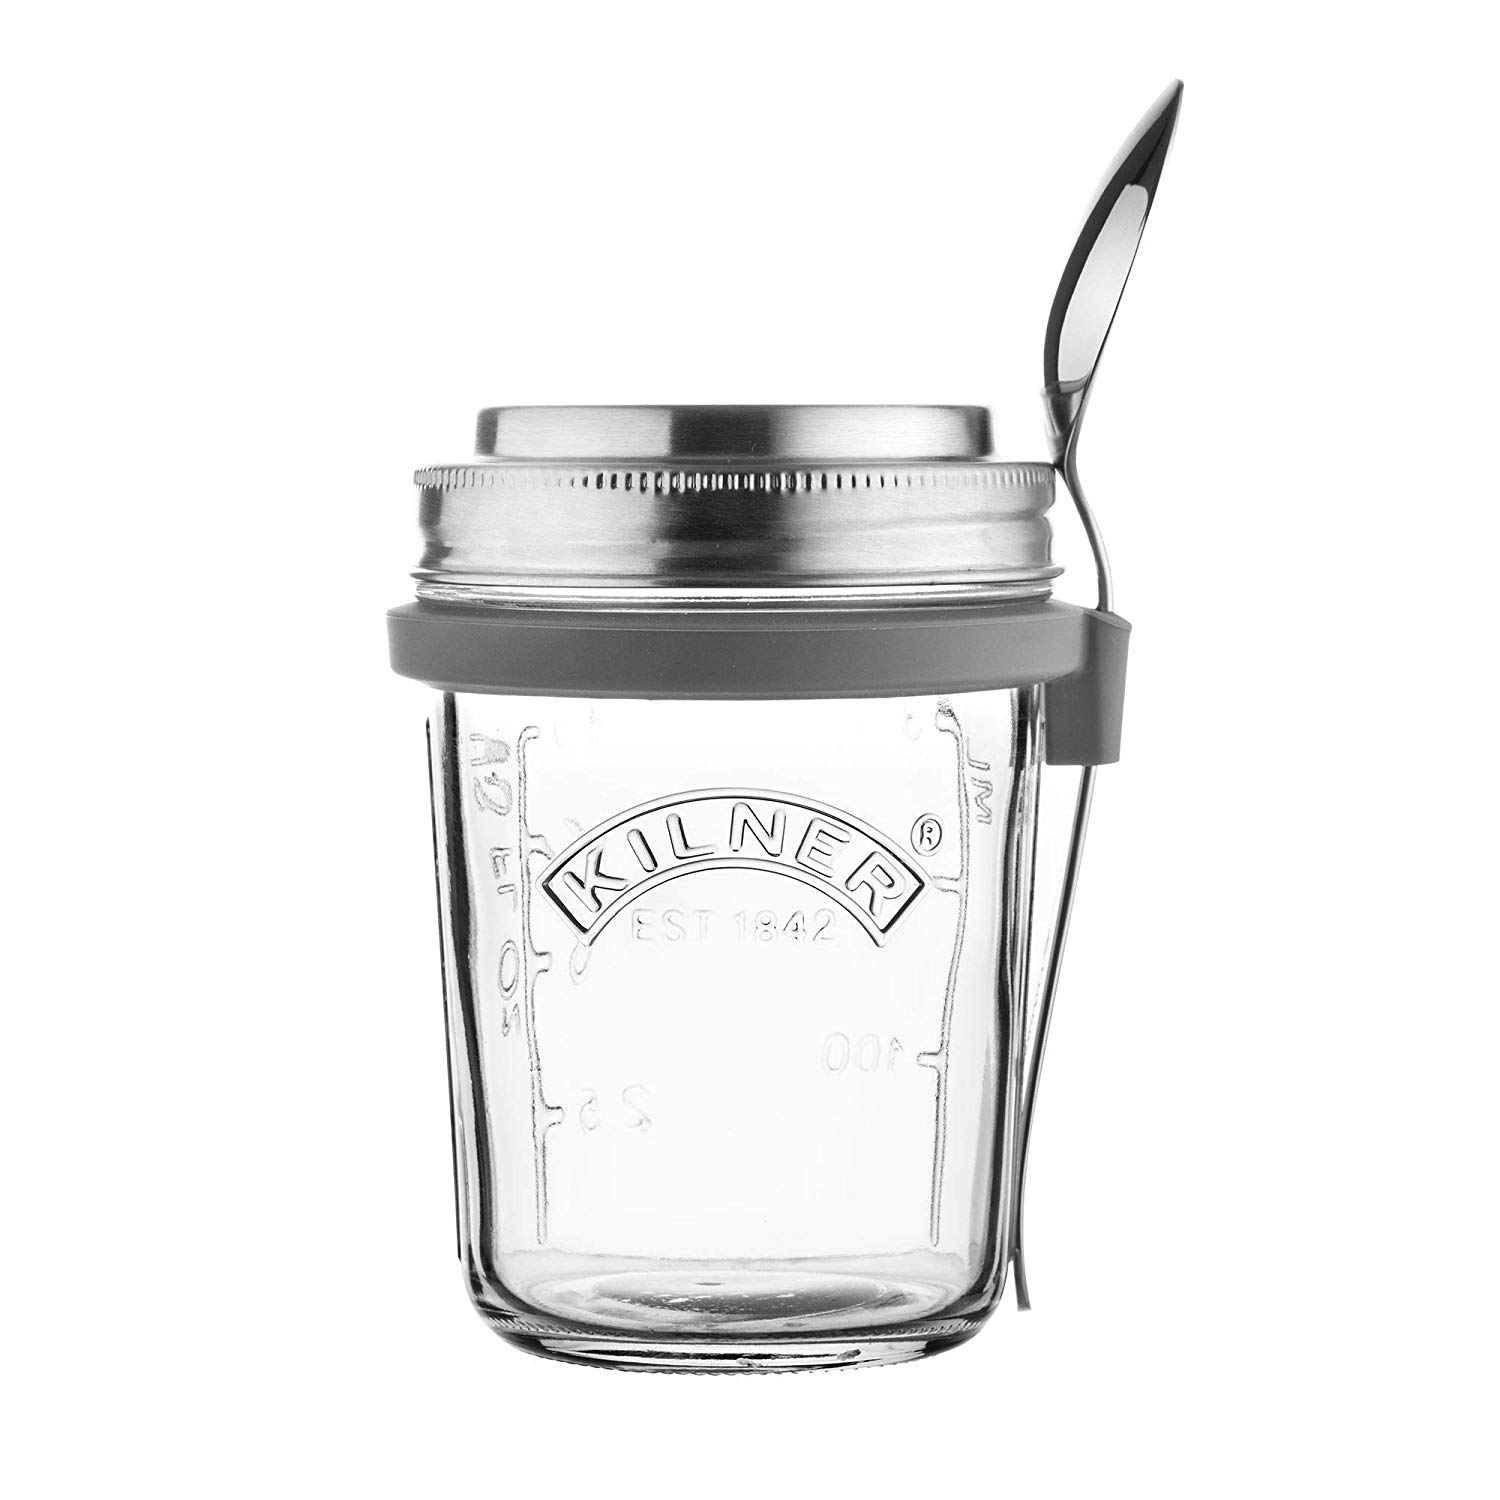 Kilner Glass Breakfast Jar with Screw Top Lid - 350ml